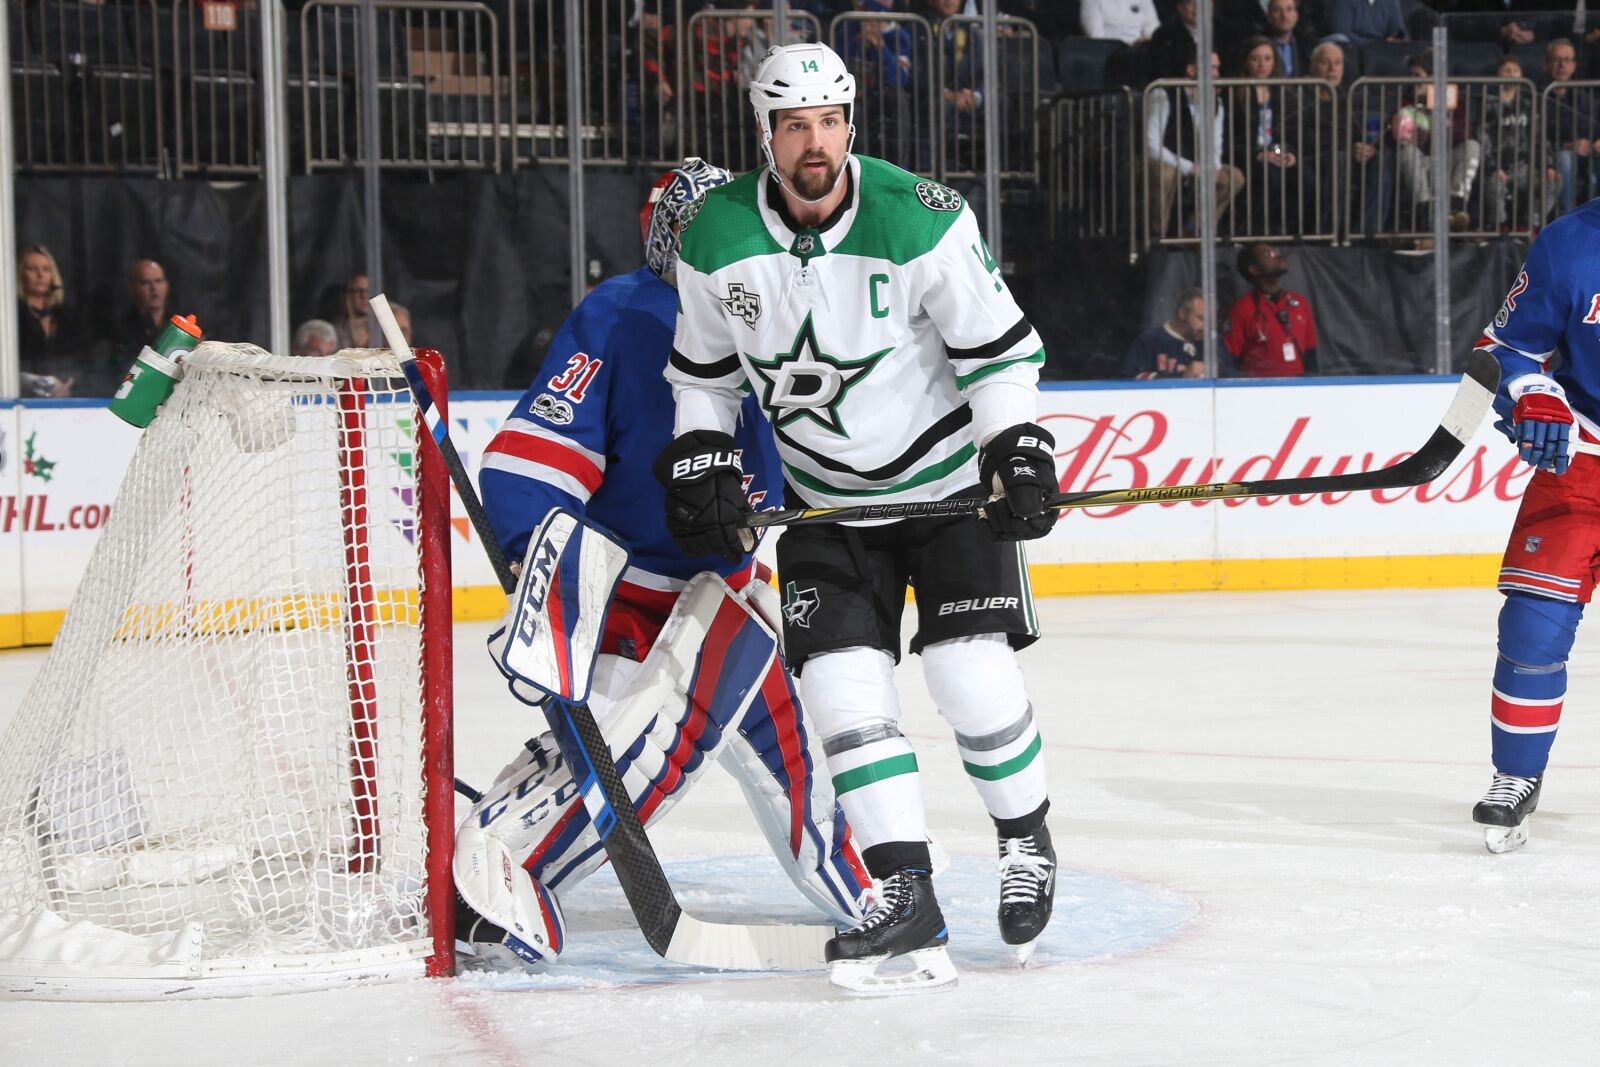 Dallas Stars at New York Rangers: Game Info, Broadcast, Injuries